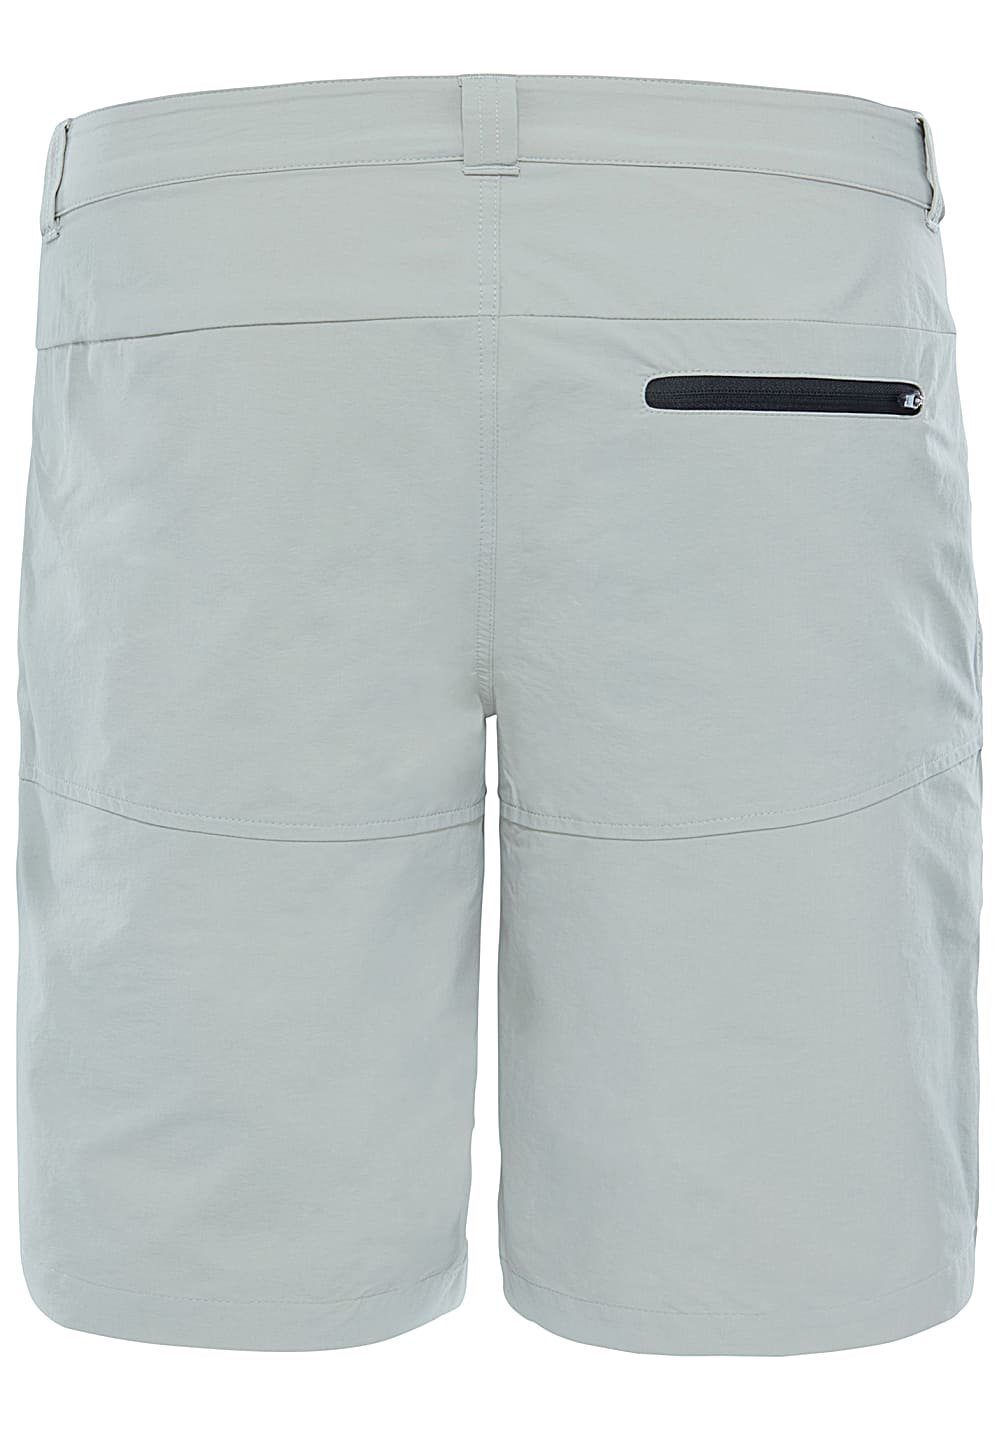 The Short North Face Purna Short The 026302